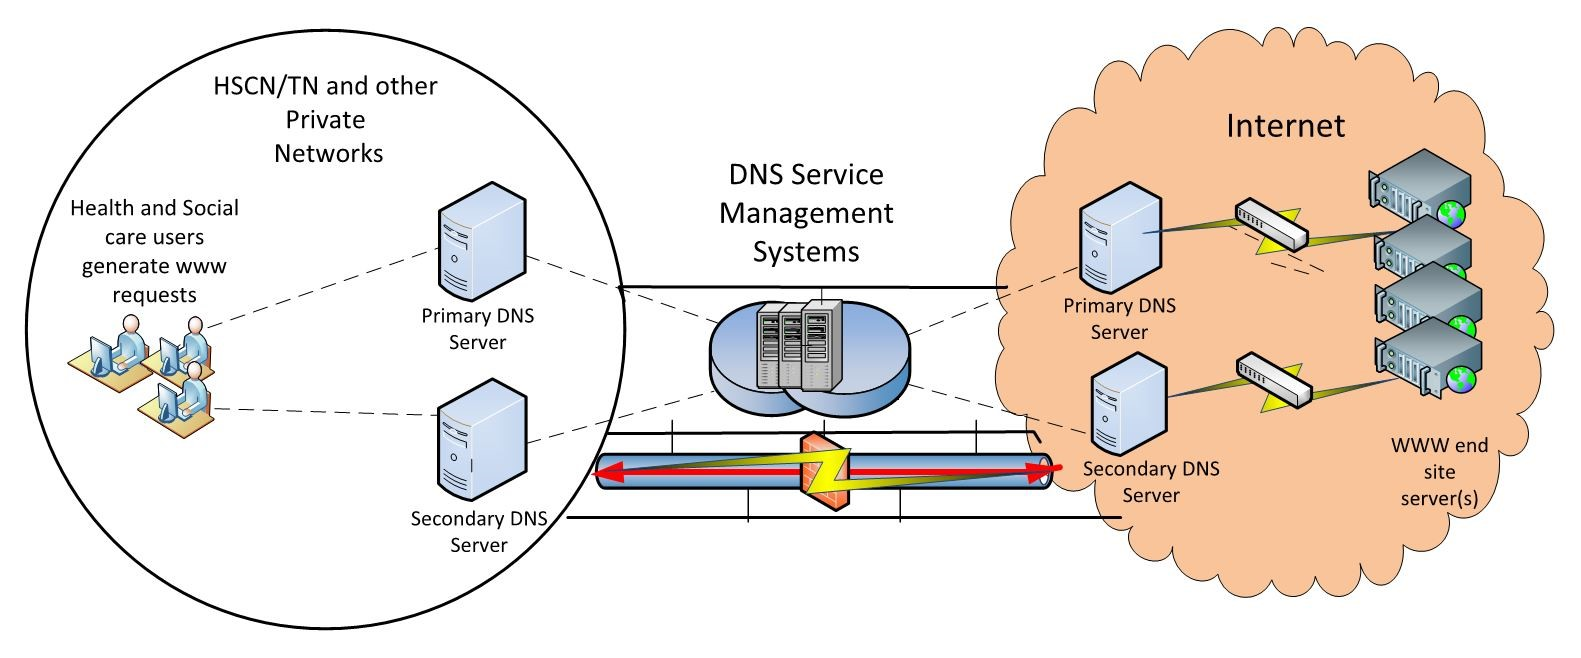 Logical DNS configuration used across HSCN/TN.